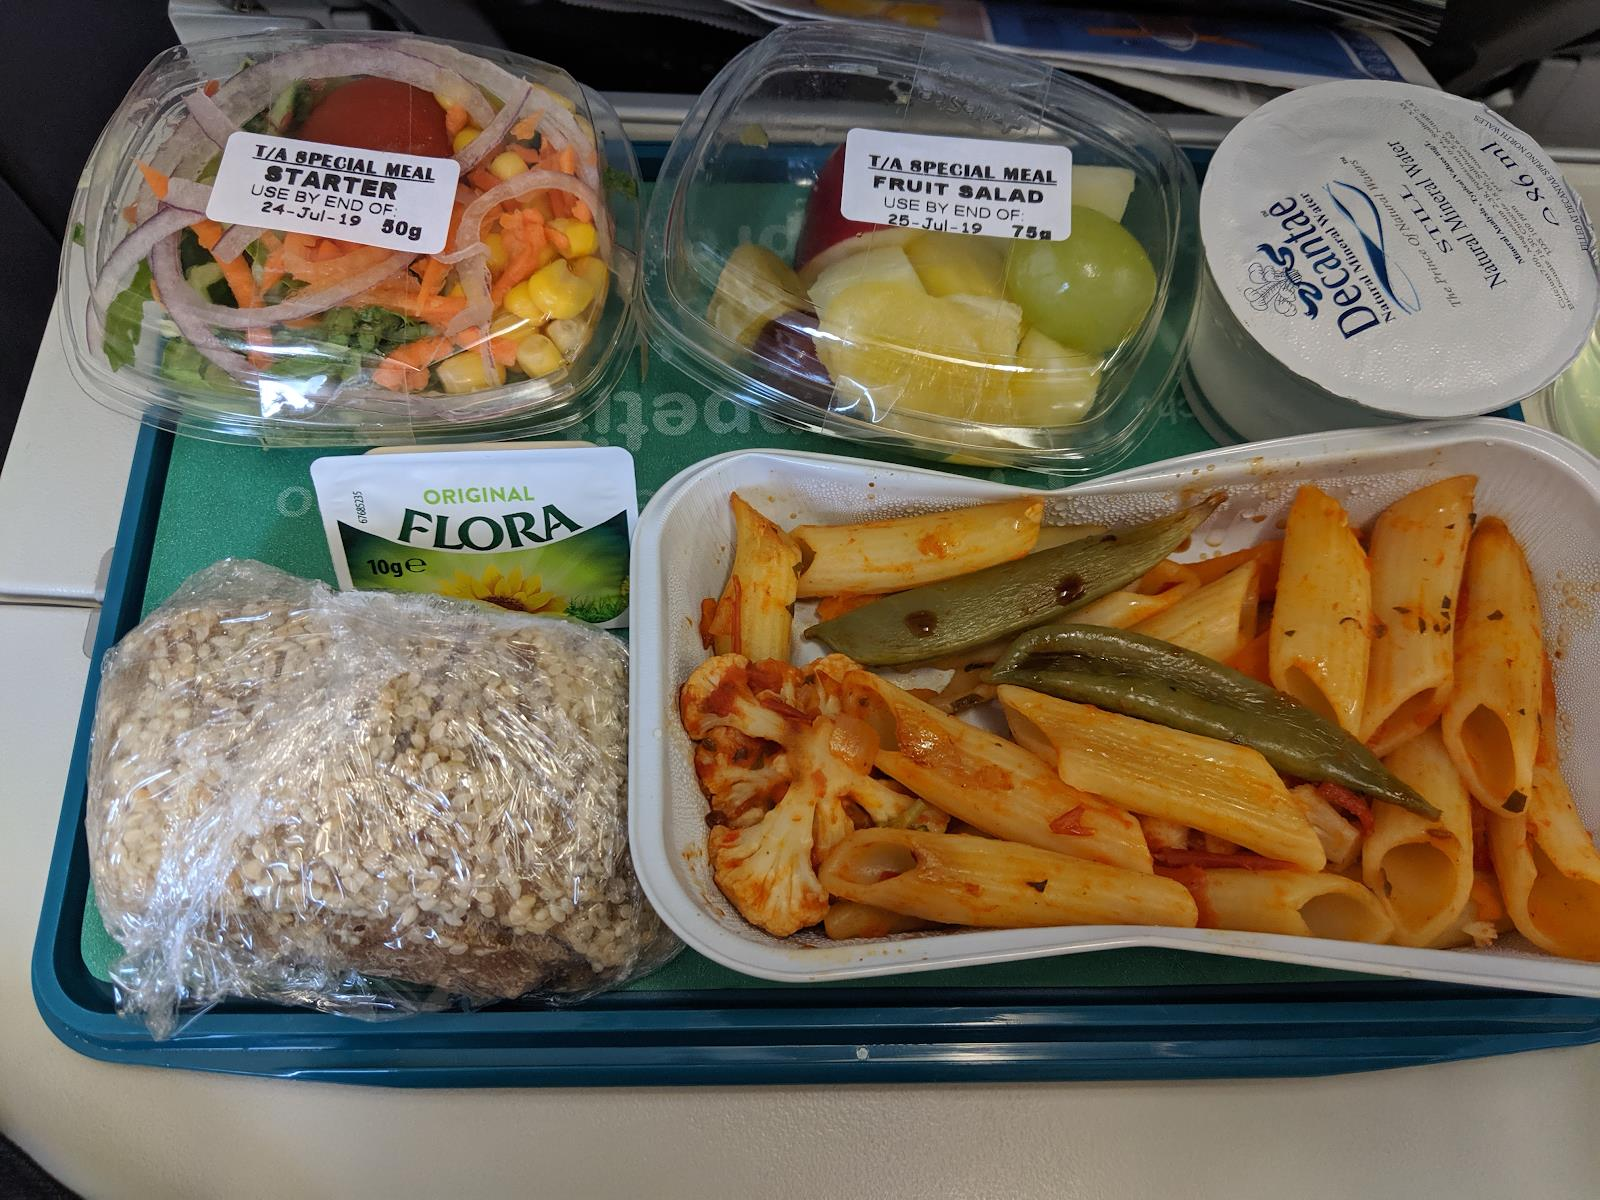 Vegan meal in-flight fails – campaigners call on airlines to better cater for vegans